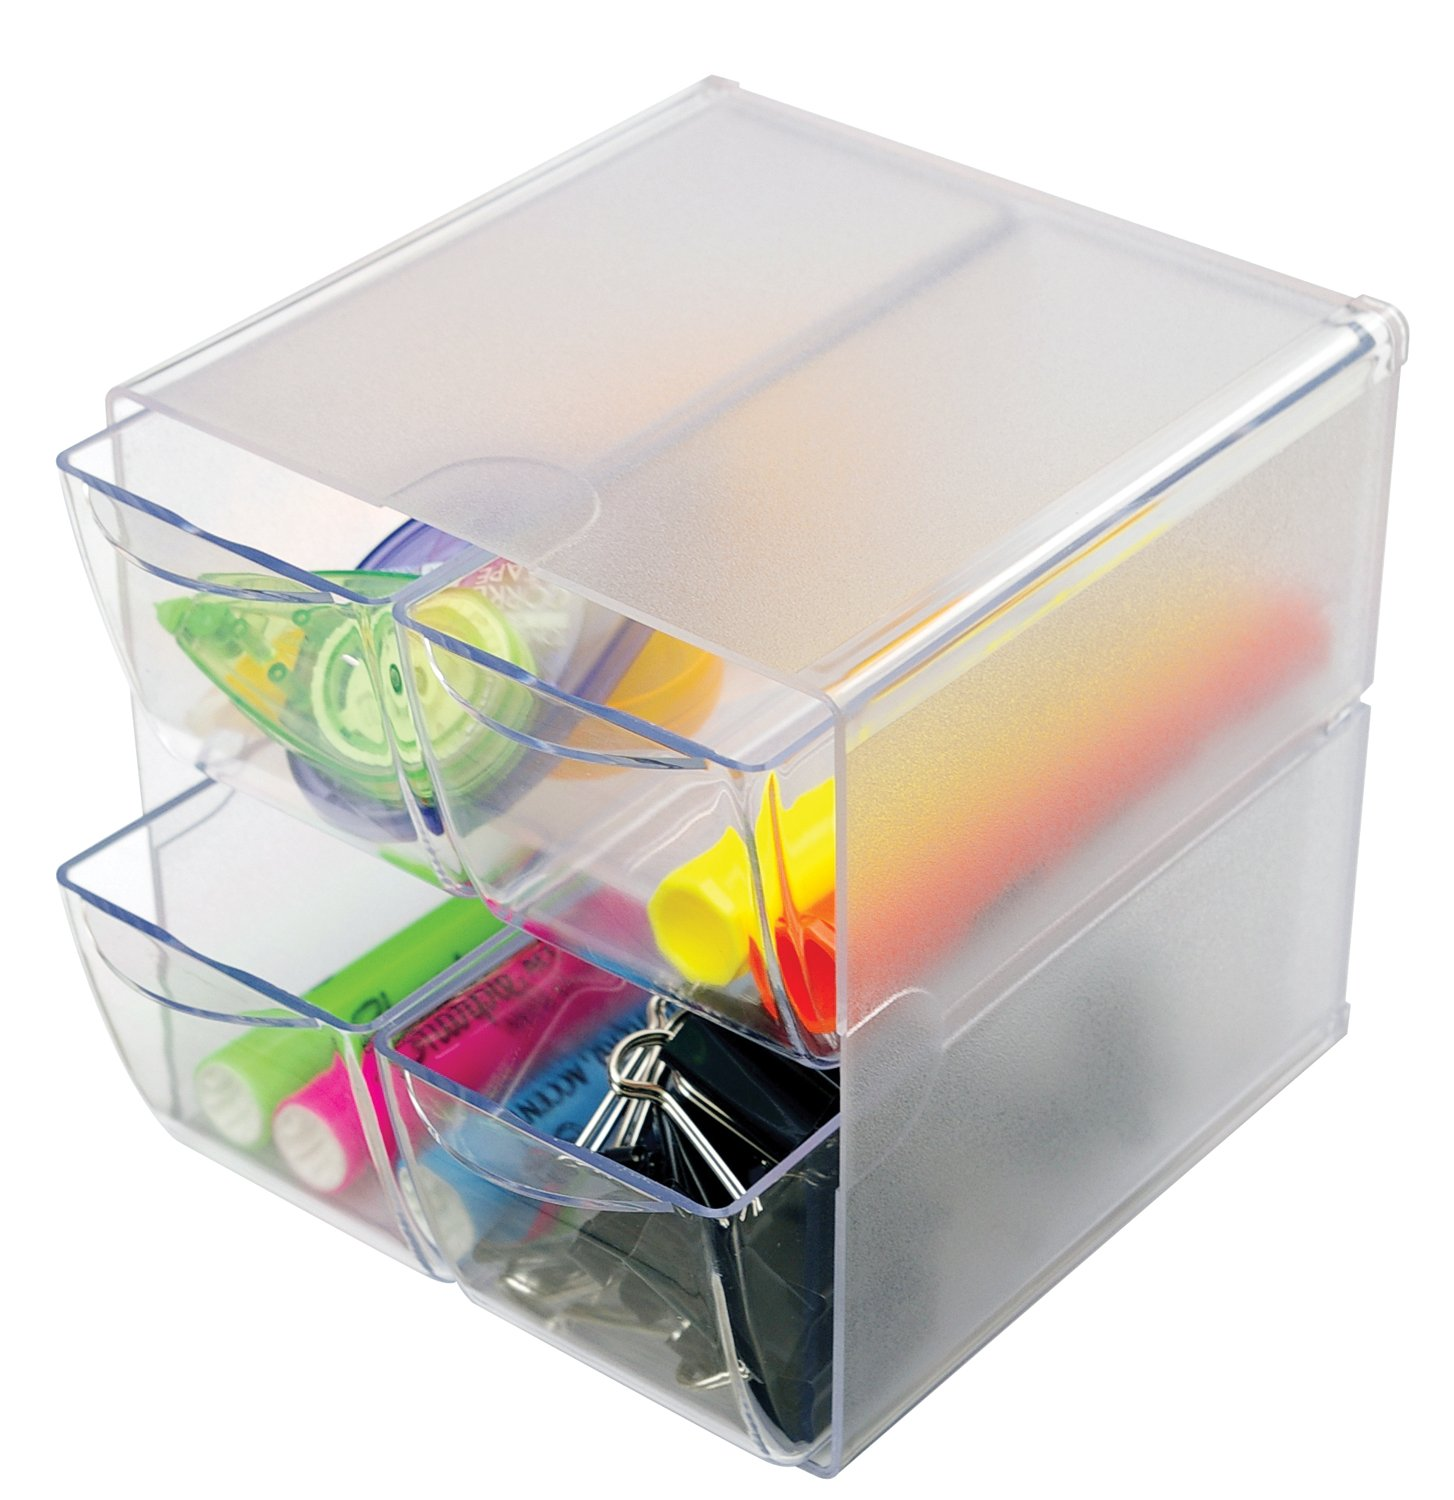 Deflecto Stackable Cube Organizer, Desk and Craft Organizer, 4 Drawers, Clear, Removable Drawers and Dividers, 6''W x 6''H x 7 1/8''D (350301CR)